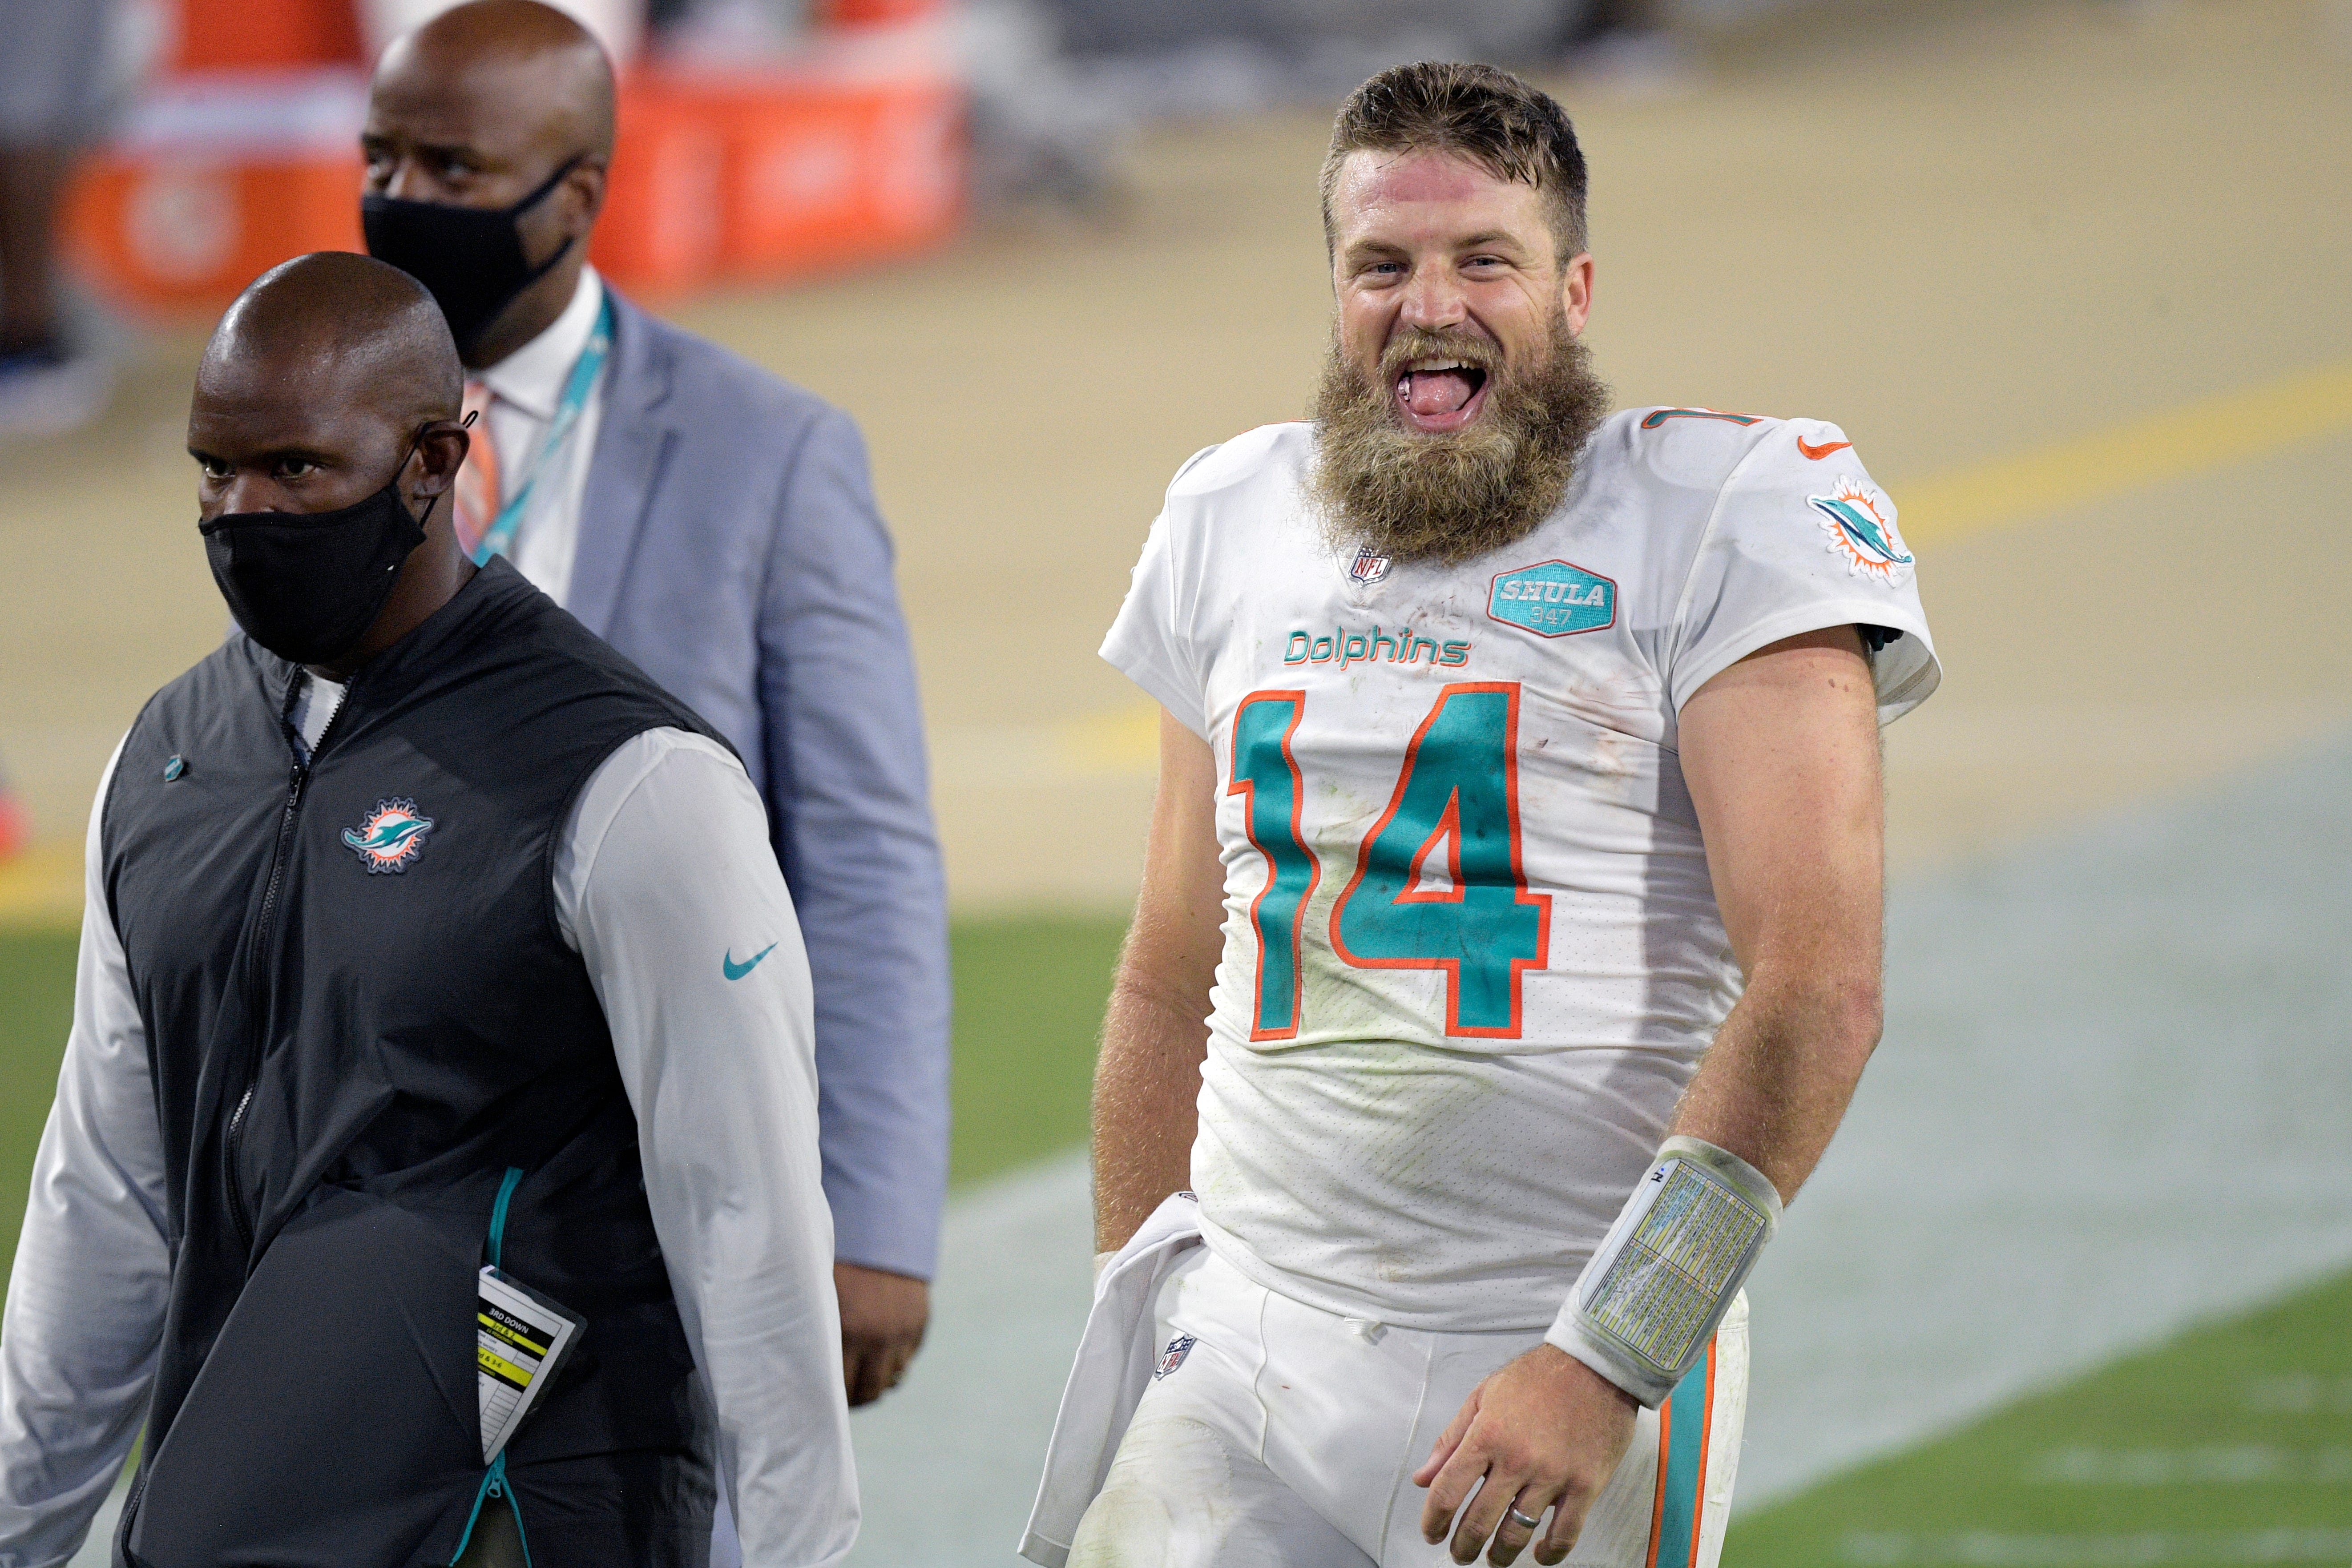 Opinion: Before Tua parade starts, Miami Dolphins' Ryan Fitzpatrick deserves to be celebrated